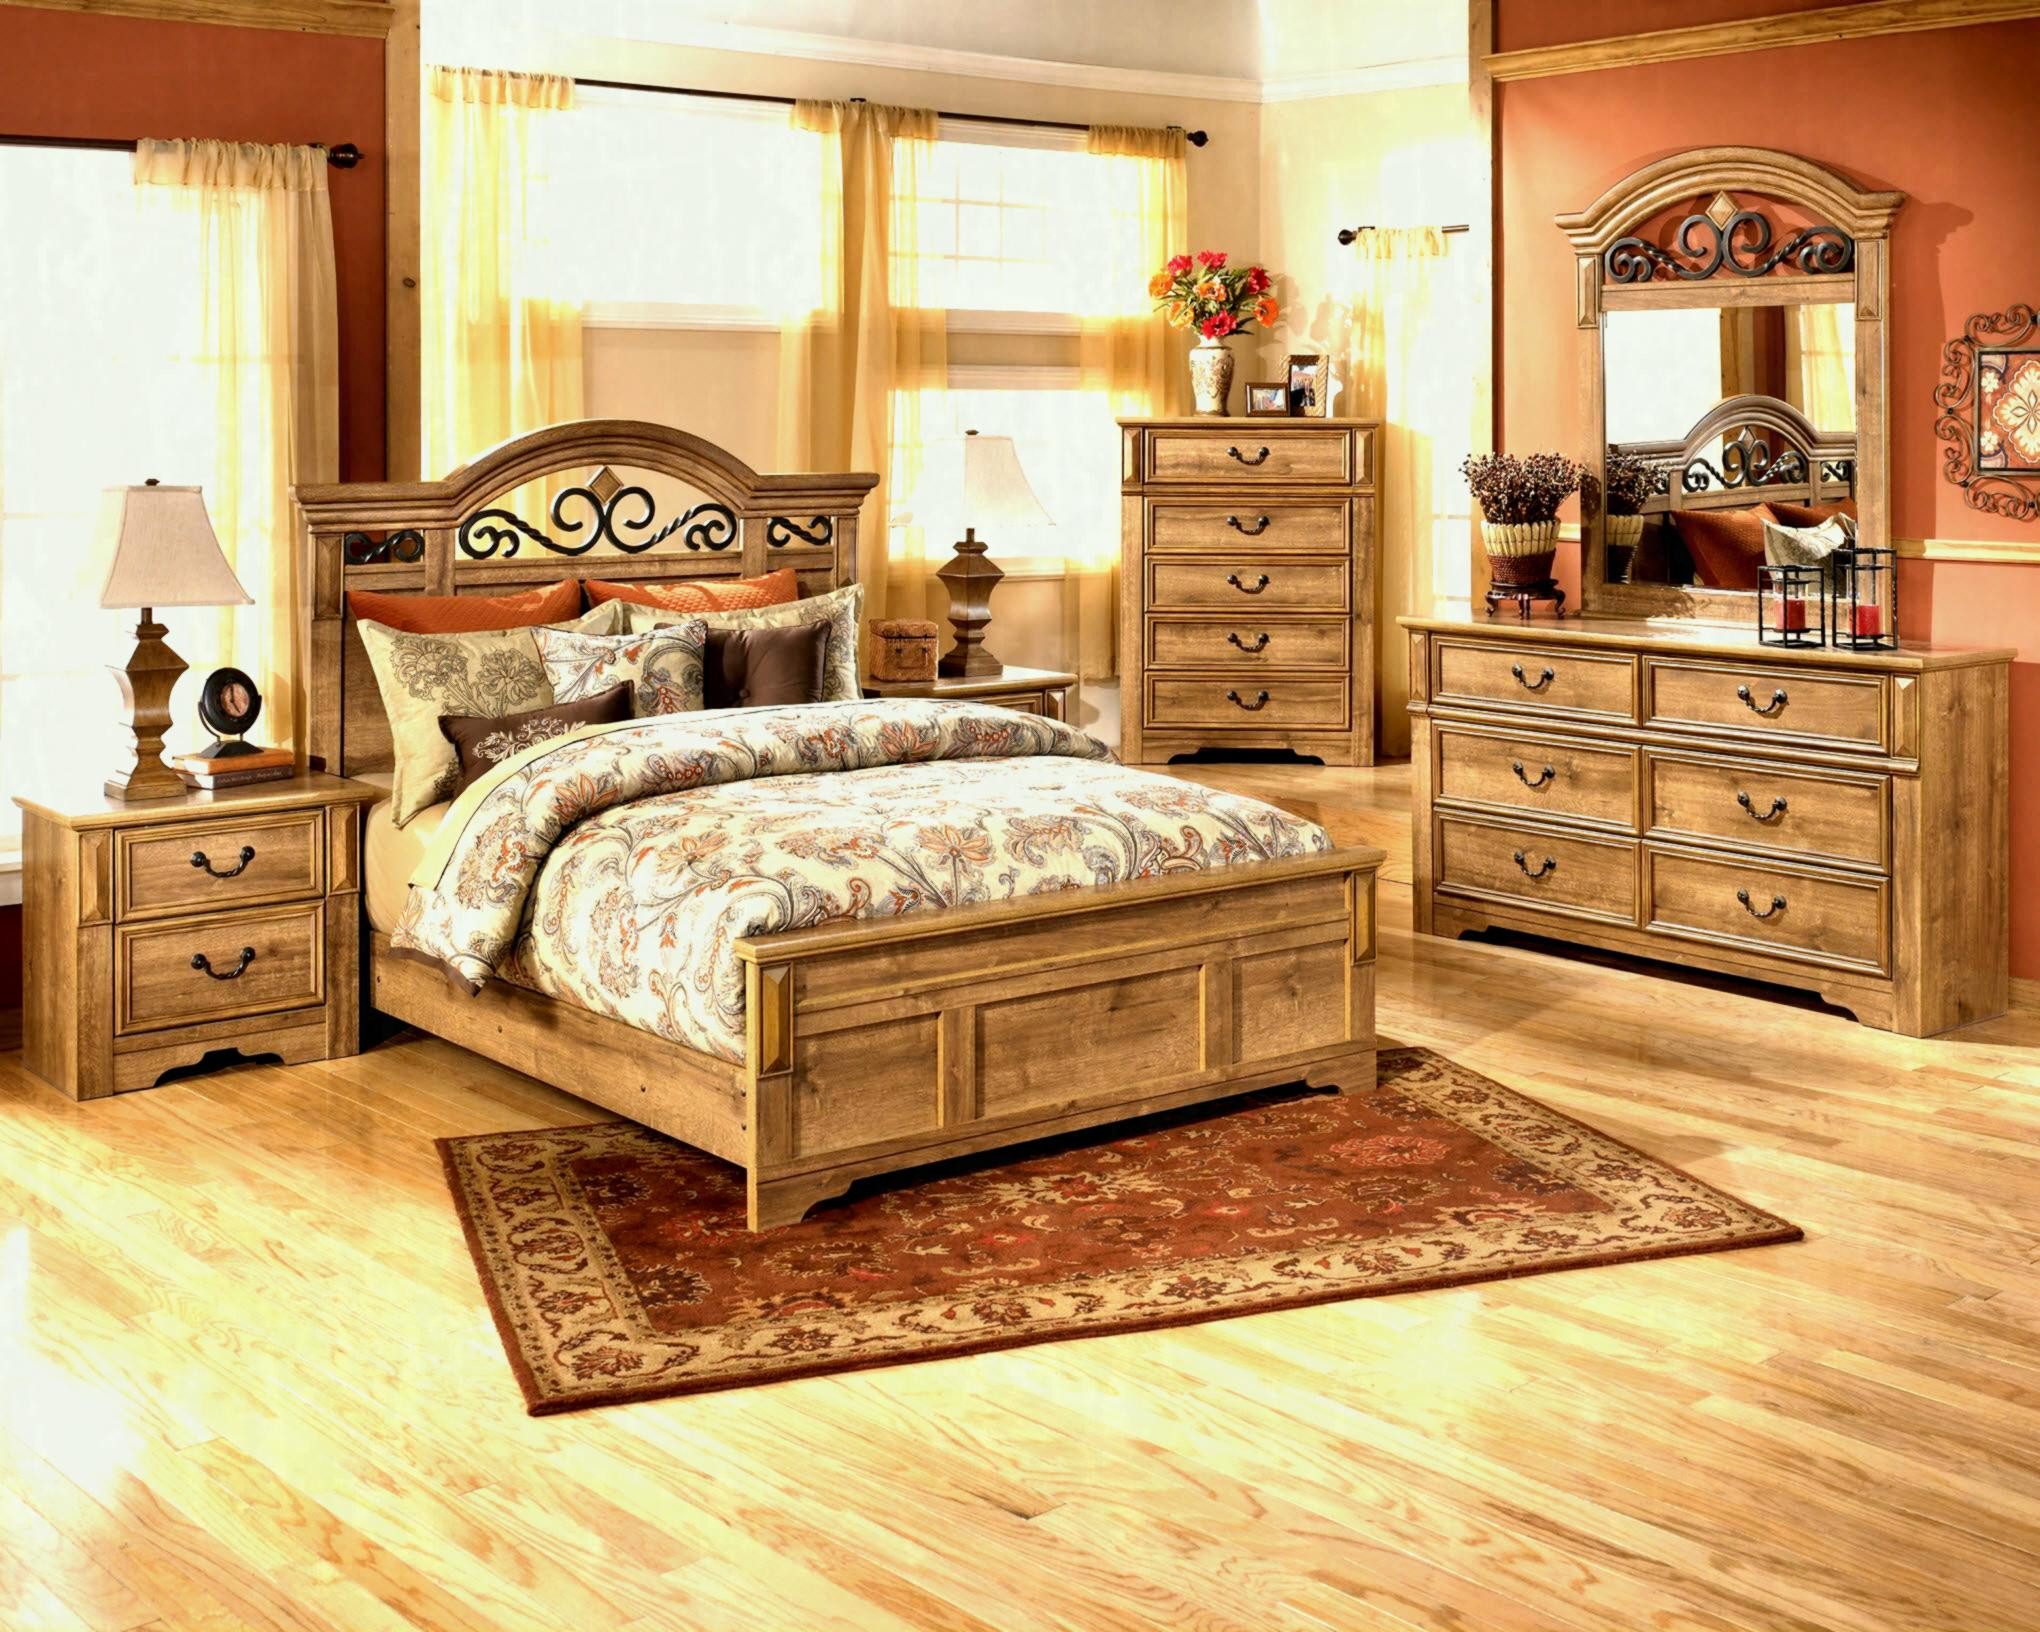 Best ideas about Bedroom Sets For Cheap . Save or Pin Bedroom fice Furniture Sets Craigslist For Discount Now.